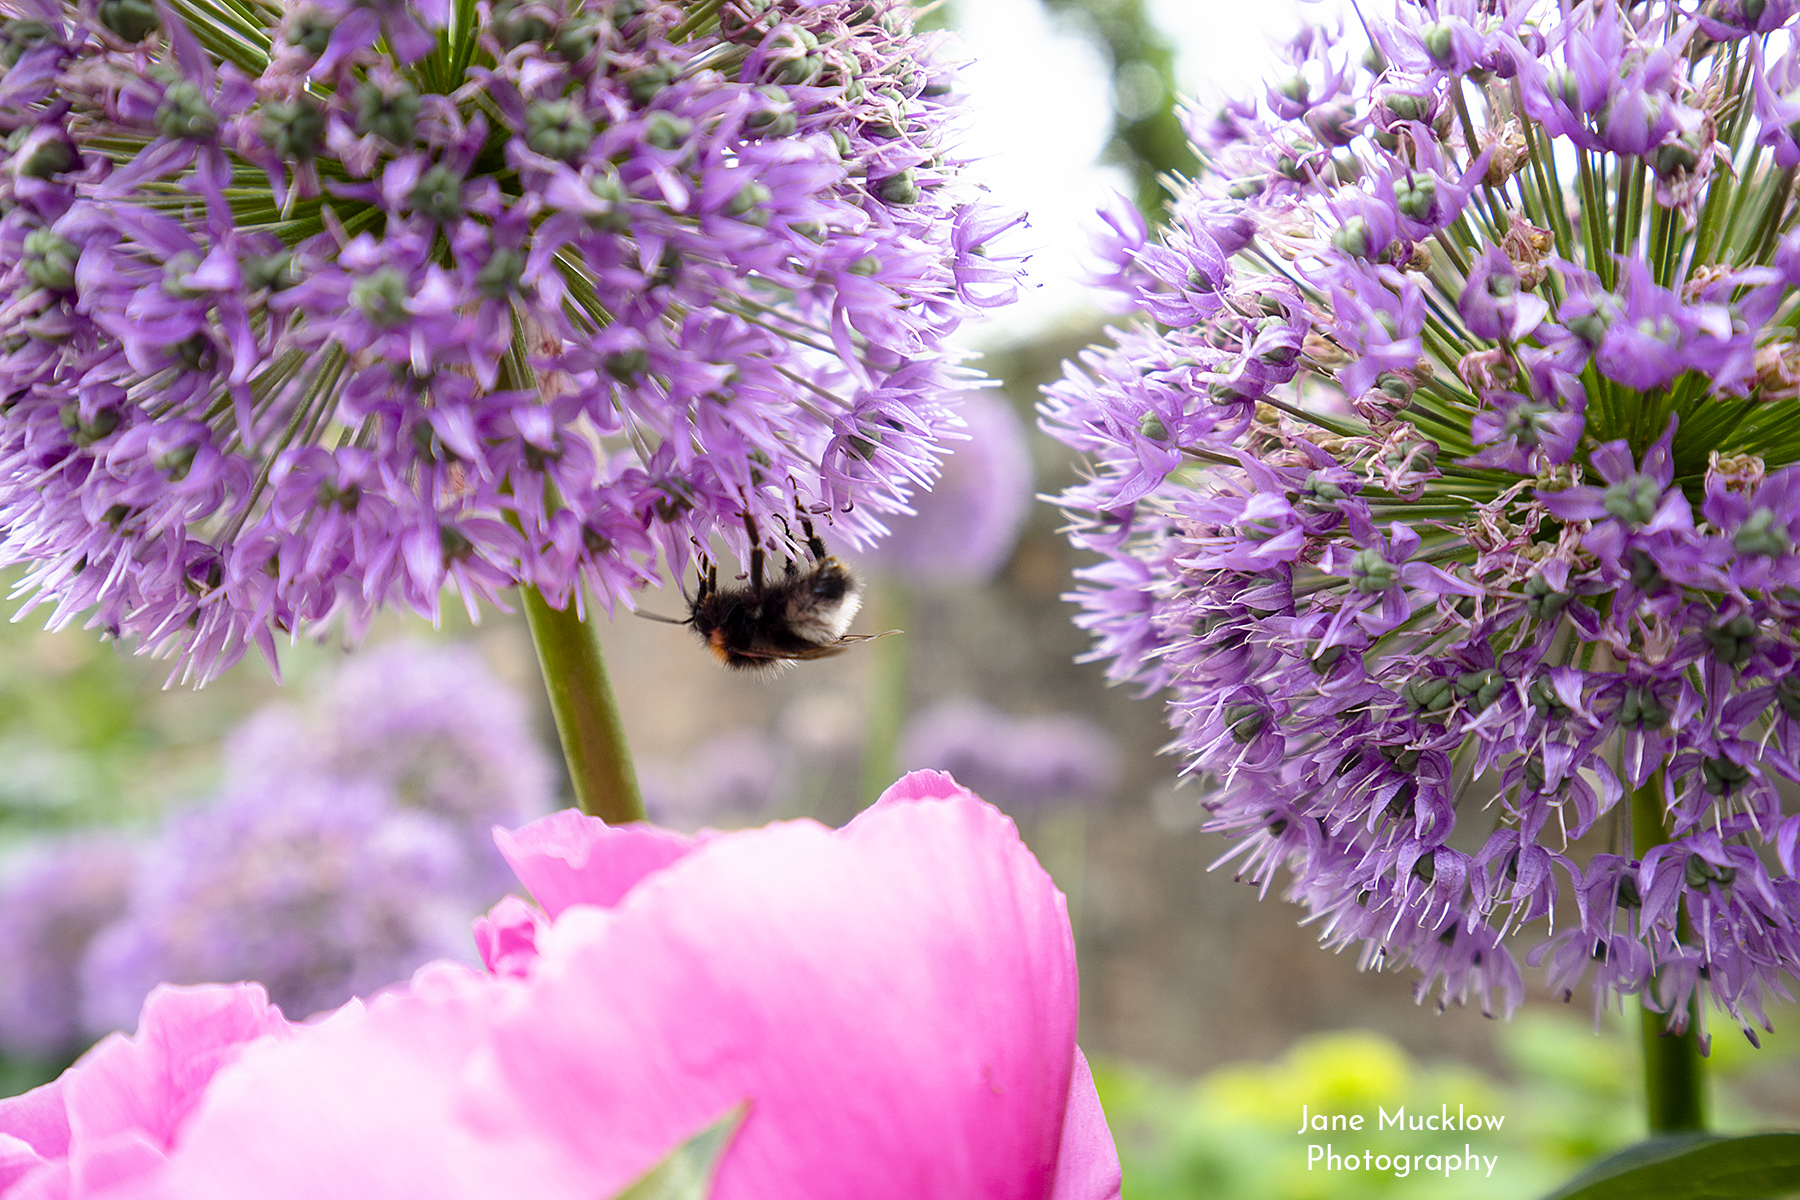 Photo of alliums and peonies, by Jane Mucklow